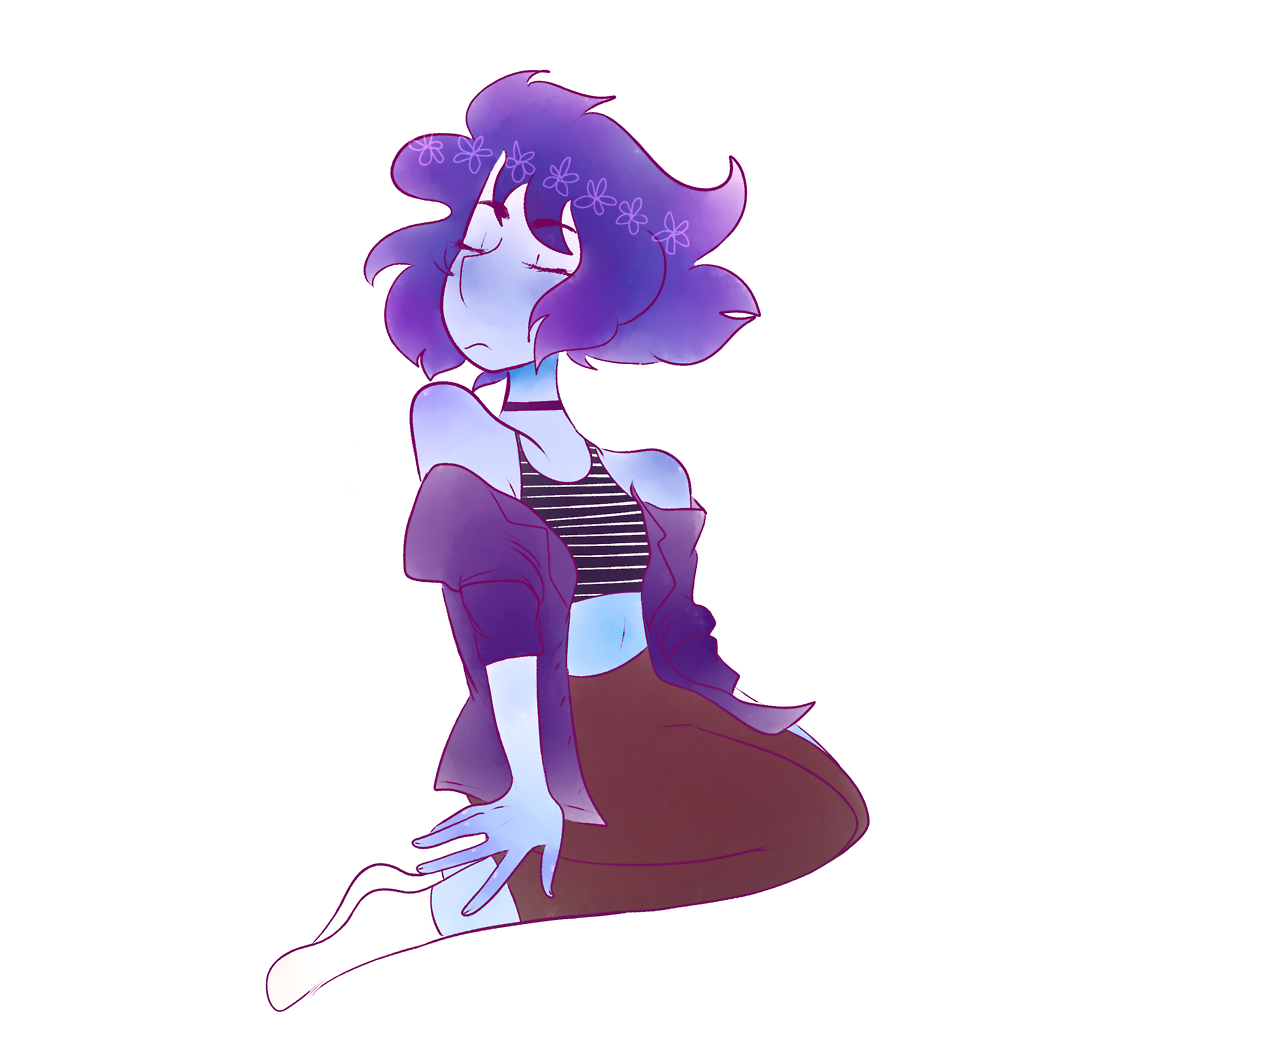 wow would u look at that i actually colored something Good for once also look a speedpaint :o